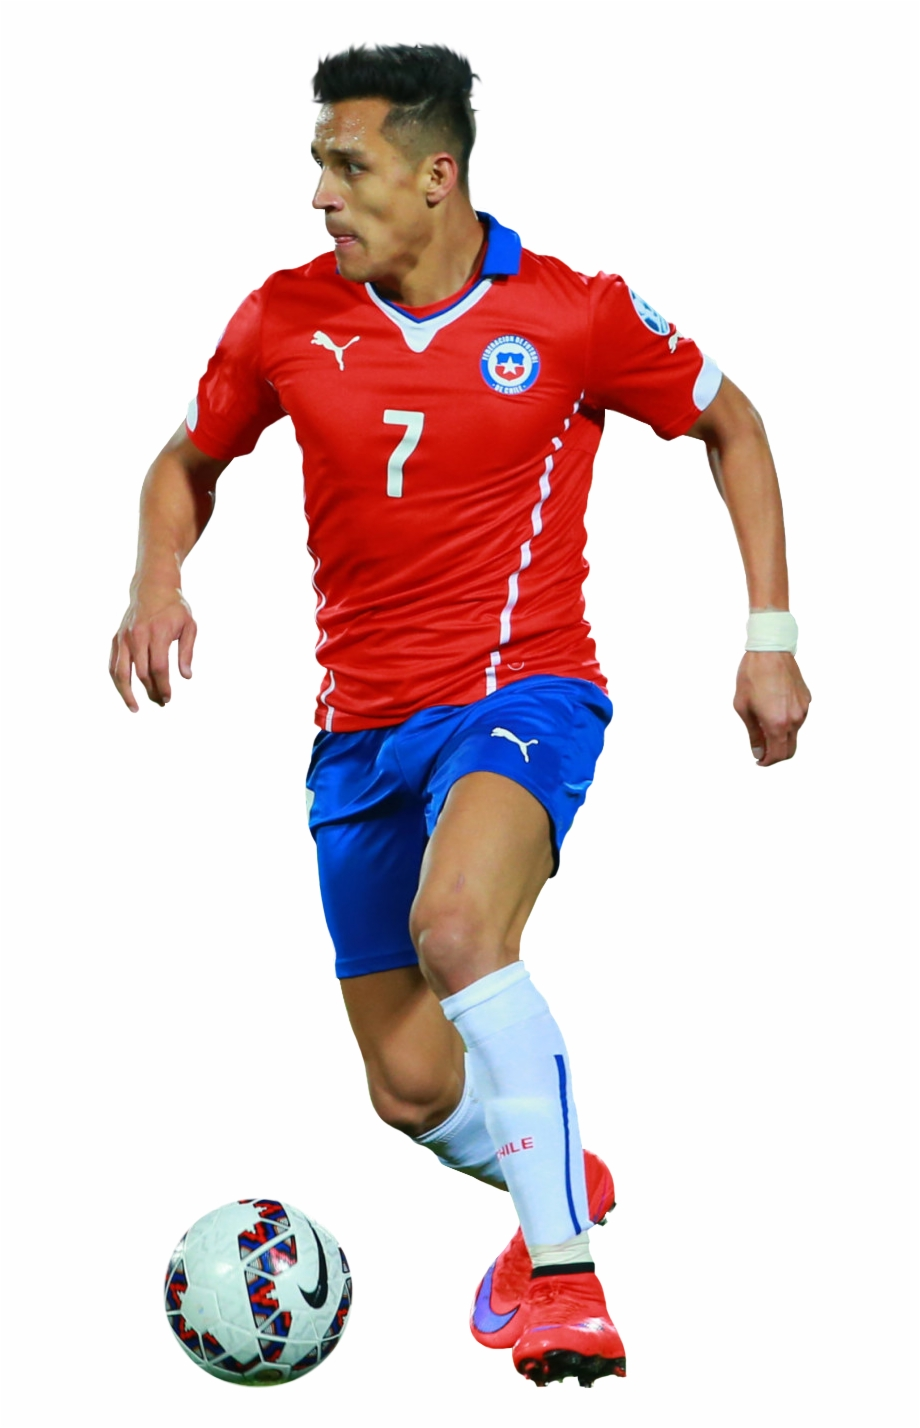 Sanches clipart royalty free stock Alexis Sanchez Chile Png Free PNG Images & Clipart Download ... royalty free stock